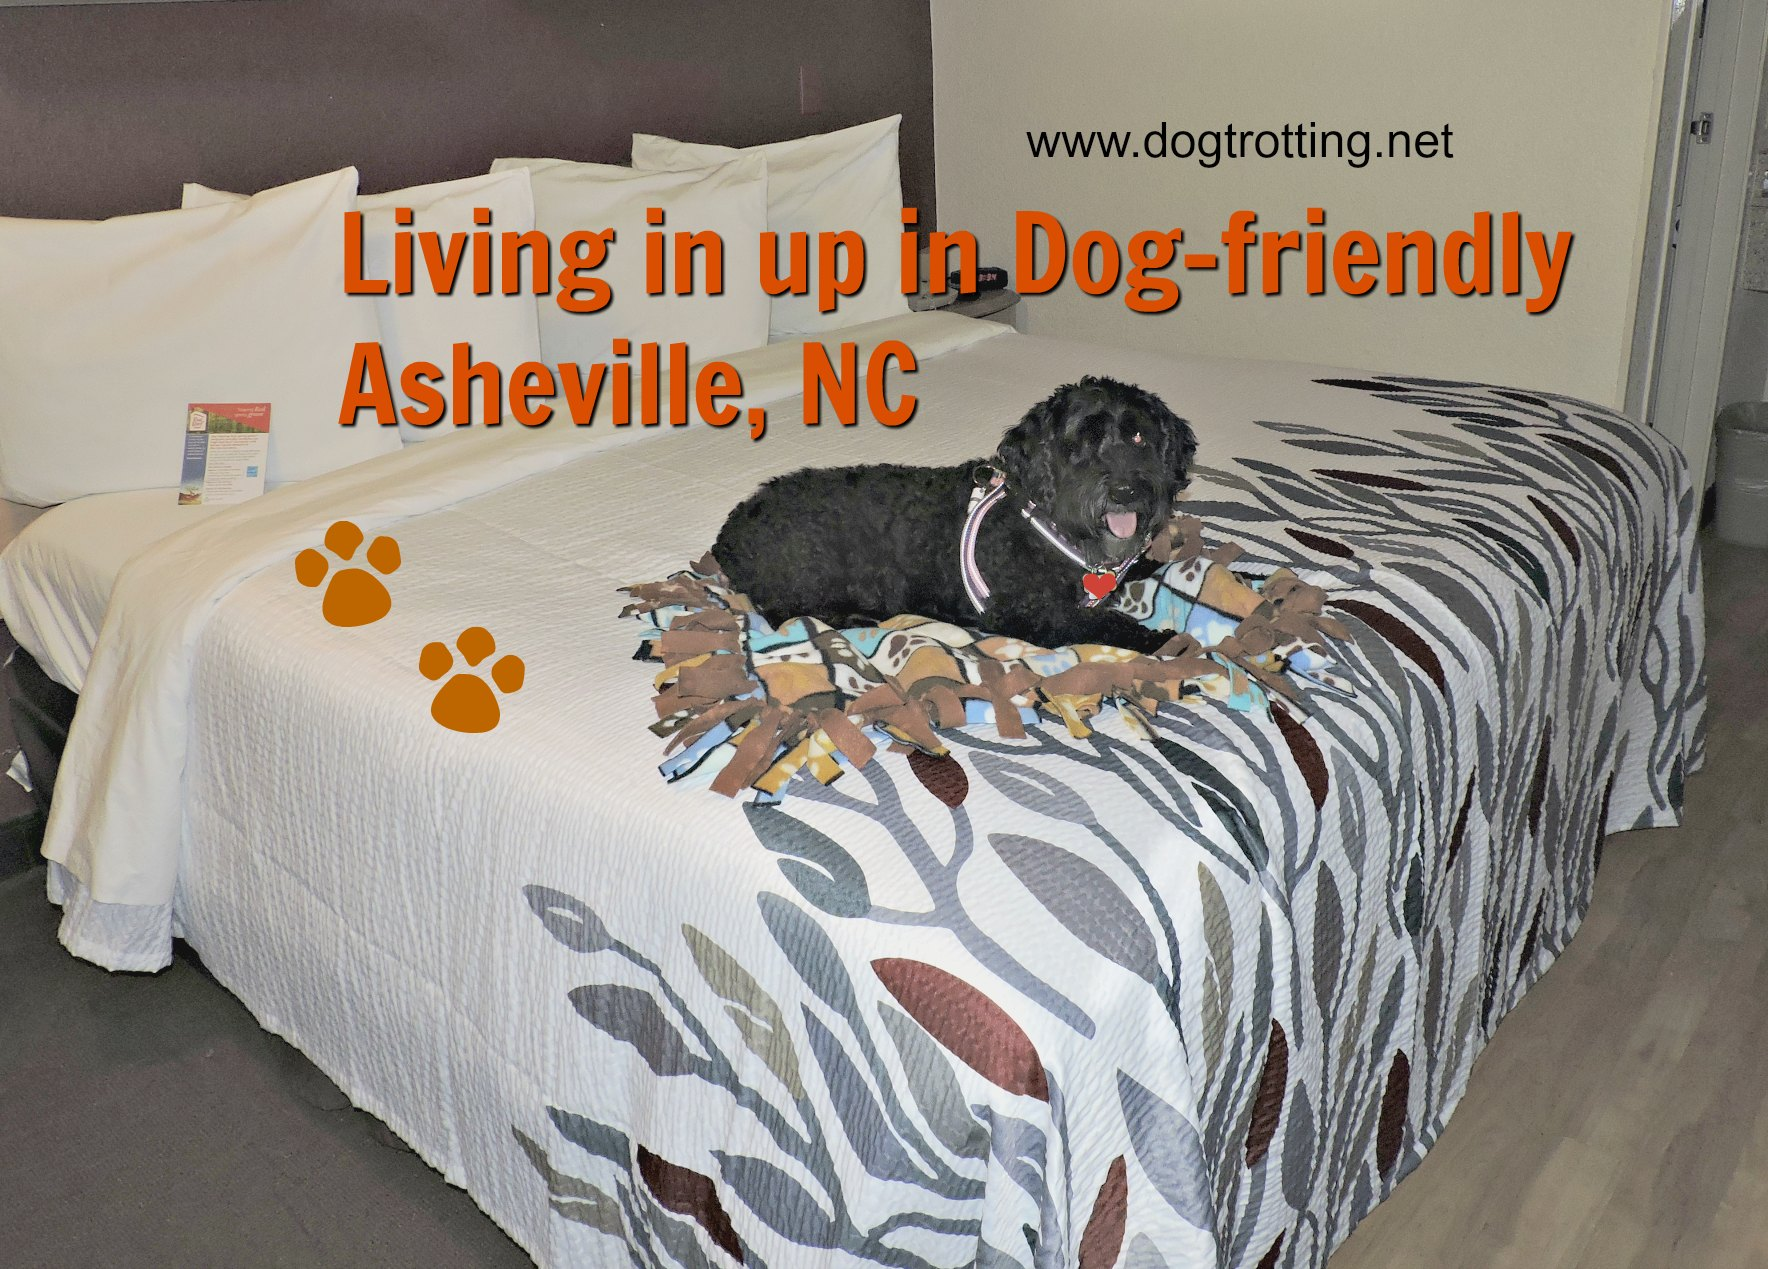 Travel Asheville, NC: Check out the most dog friendly city we've found yet (Day 4).